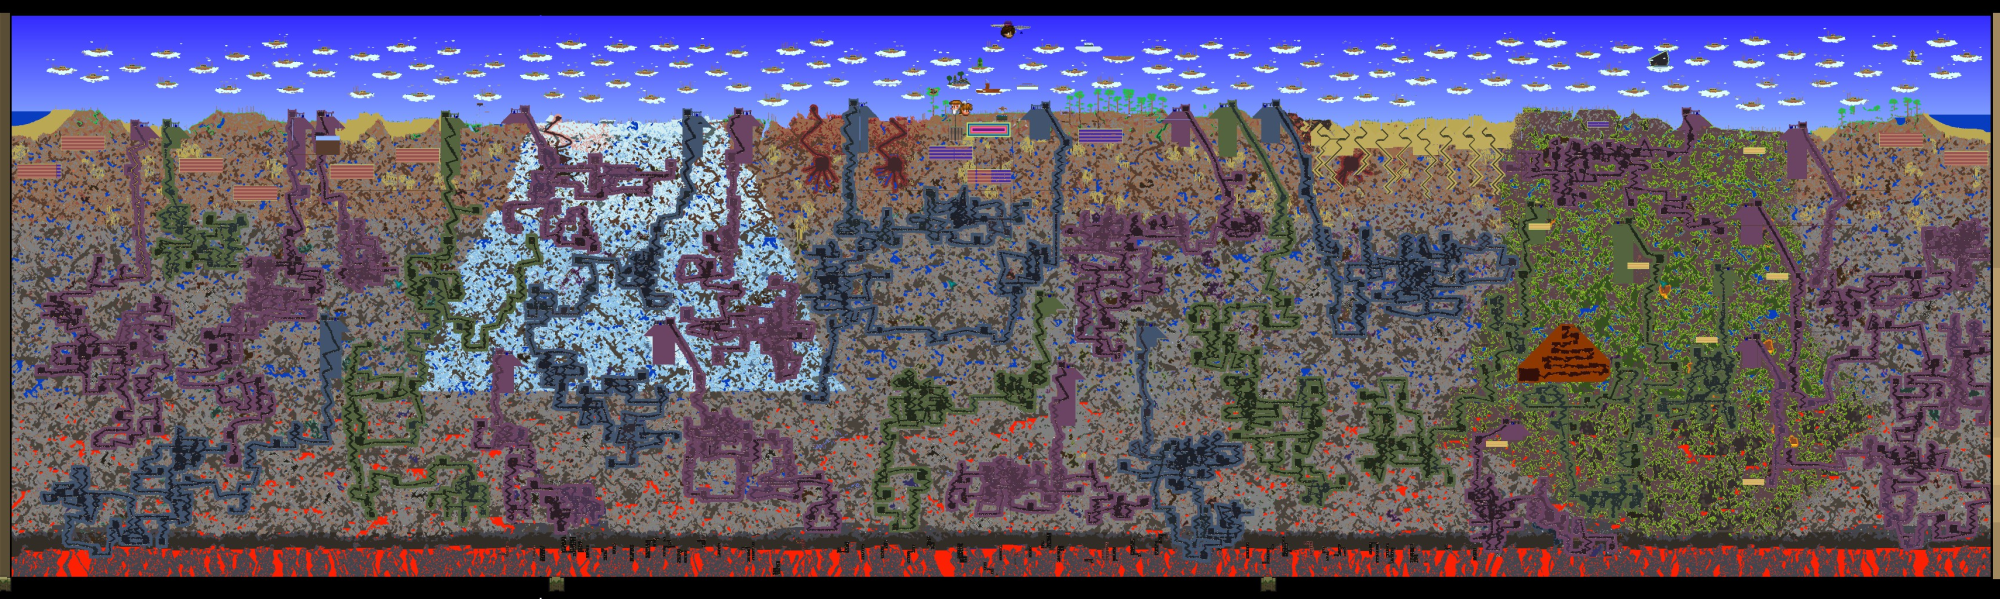 Pc the best map terraria community forums i found this on the steam i never played or see the world in the game the name of the guy who posted is tflmilk gumiabroncs Images